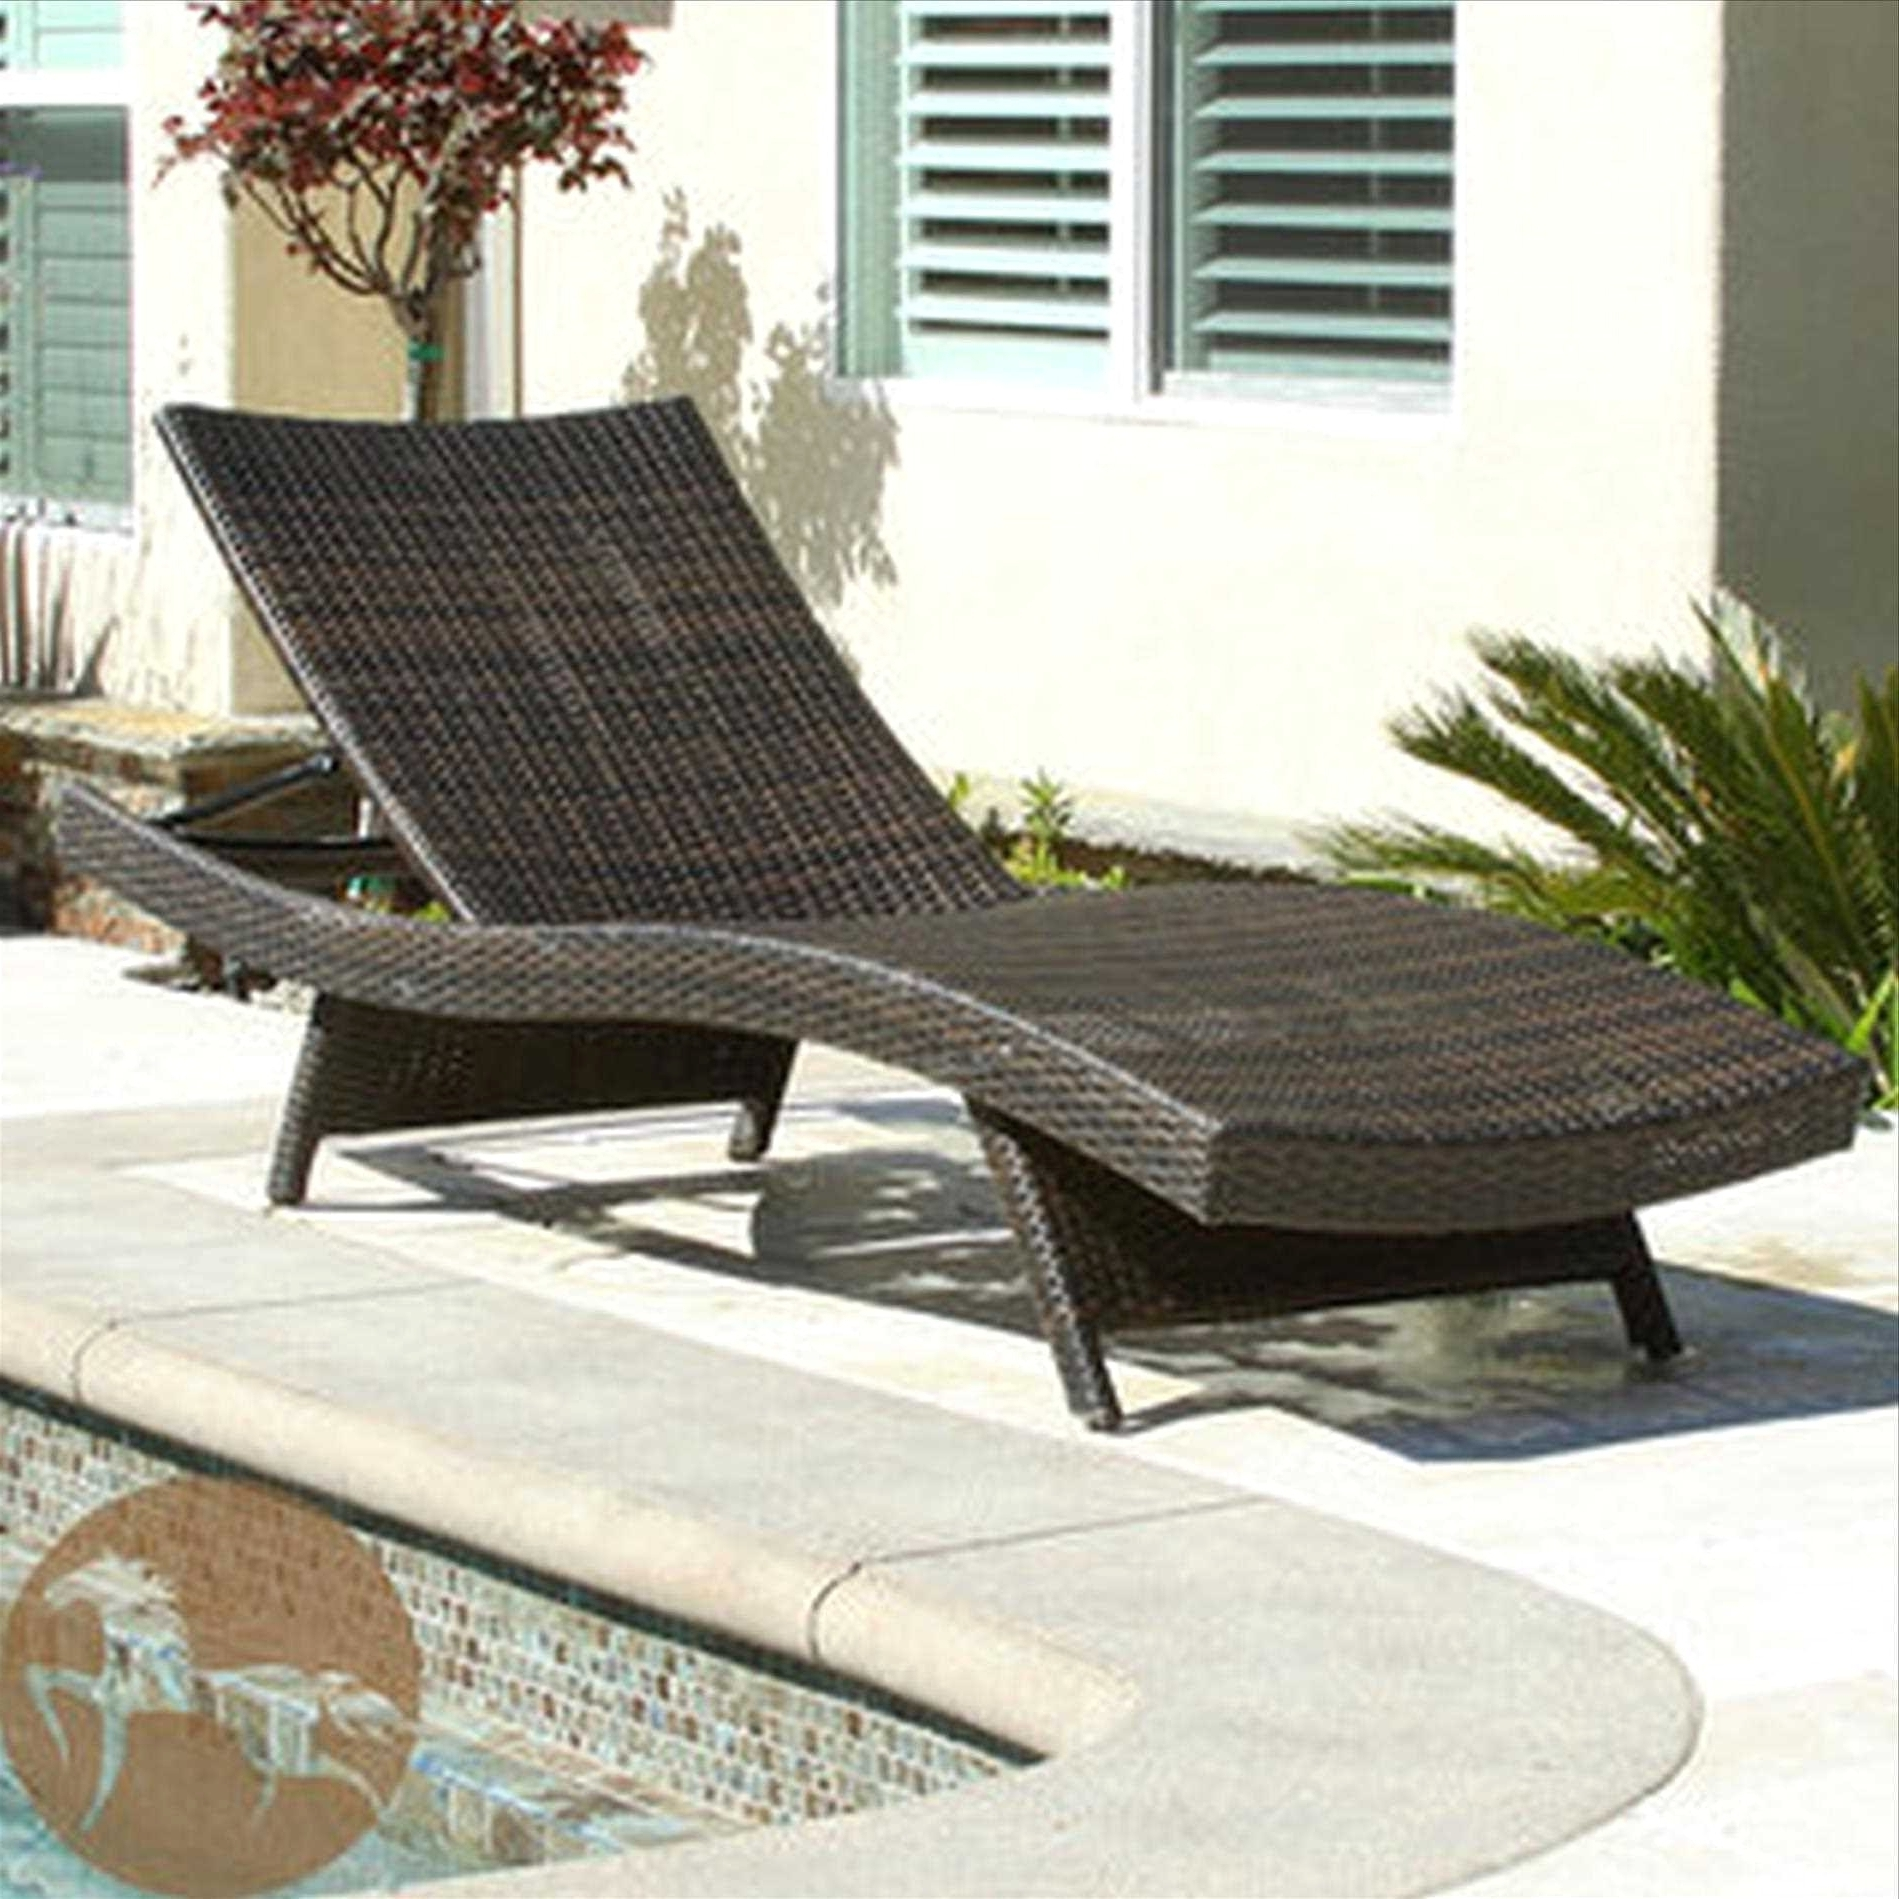 Most Recent Sears Chaise Lounge Chairs Patio Furniture • Lounge Chairs Ideas For Chaise Lounge Chairs At Sears (View 3 of 15)